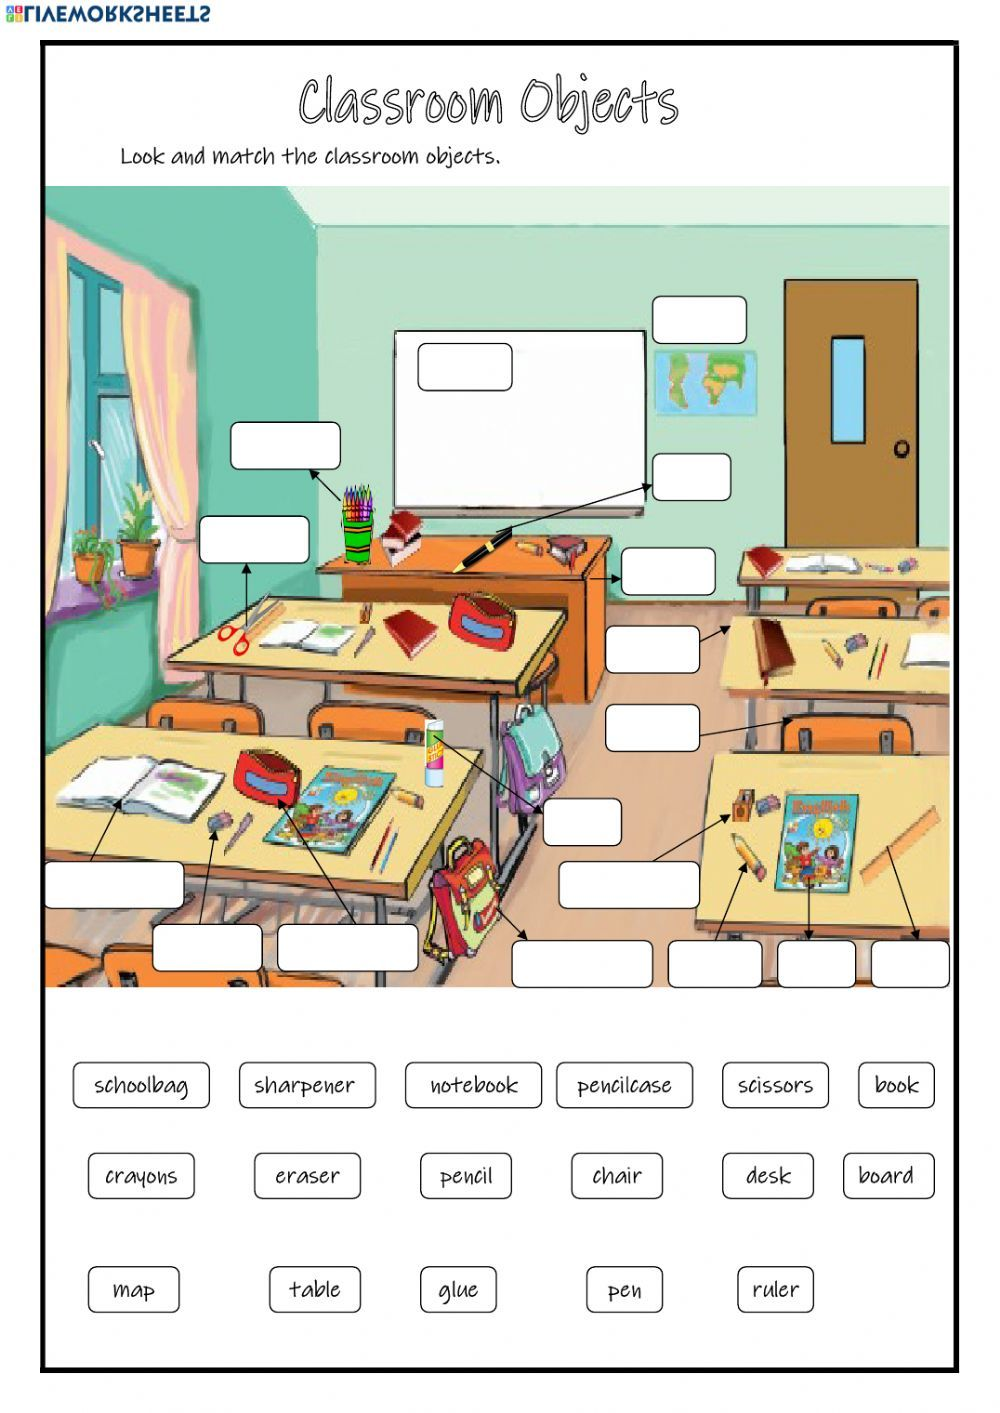 Classroom Objects online exercise and pdf  You can do the exercises